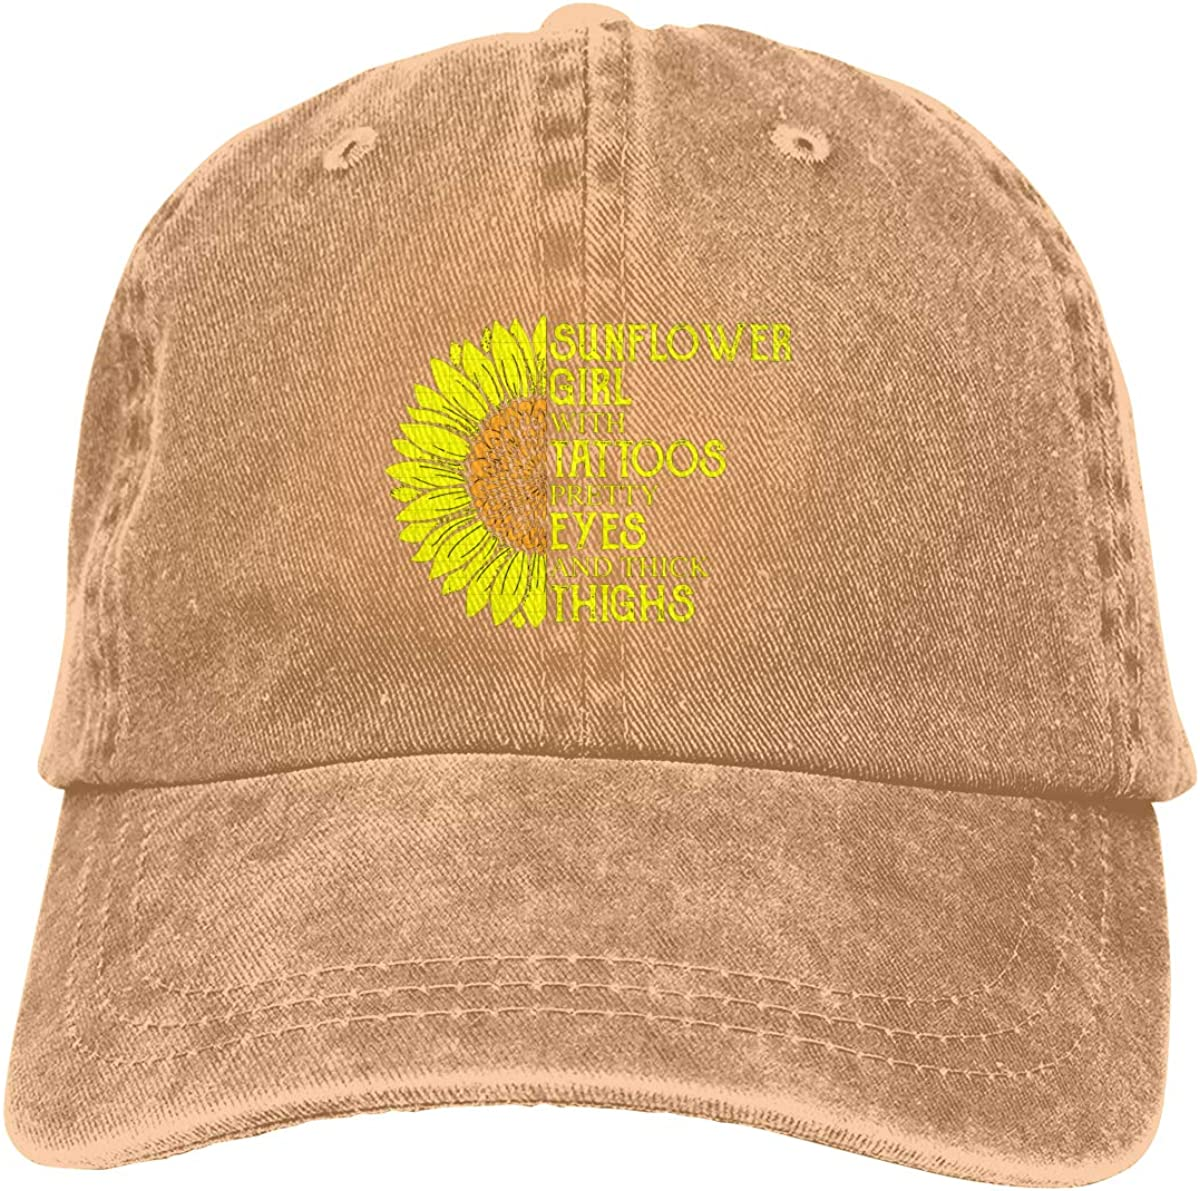 Sunflower Girl with Tattoos Pretty Eyes and Thick Thighs Unisex Soft Casquette Cap Vintage Adjustable Baseball Caps Cowboy Caps